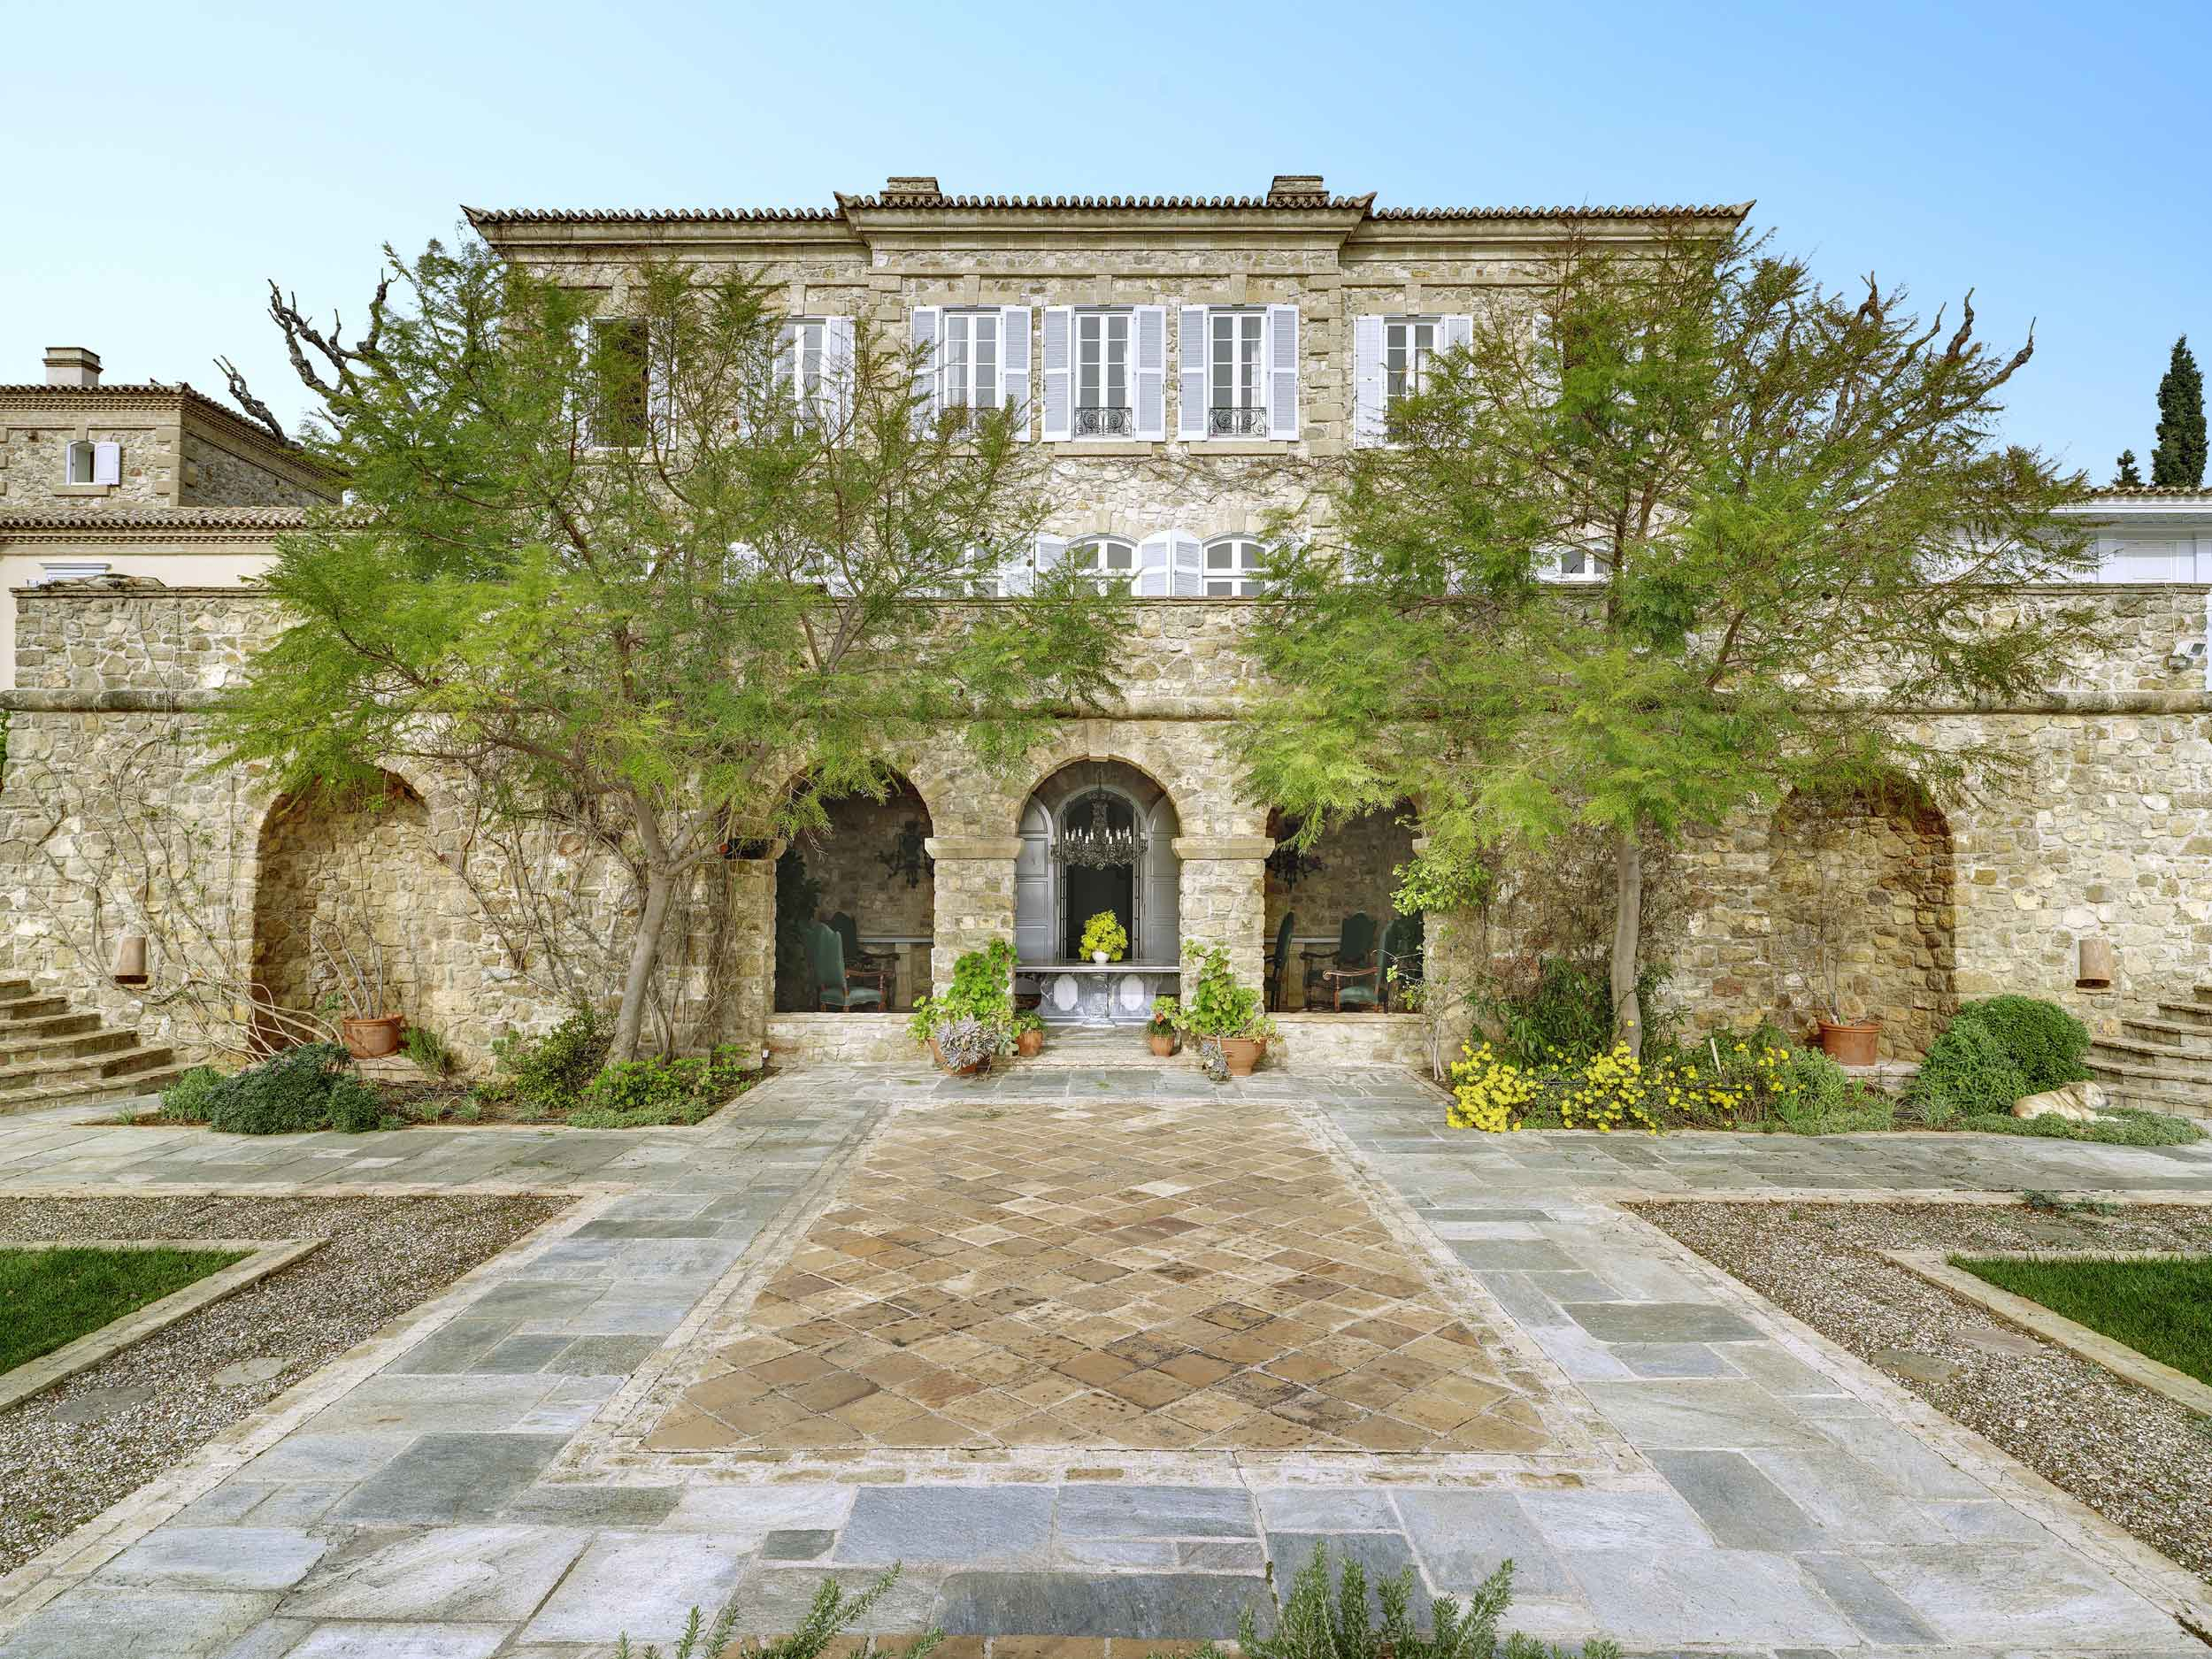 Perched on a hill in the Athenian countryside, Villa Mareza is a grand provençal-style stone villa surrounded by nearly nine acres of grounds with neoclassical gardens and resort-worthy features.